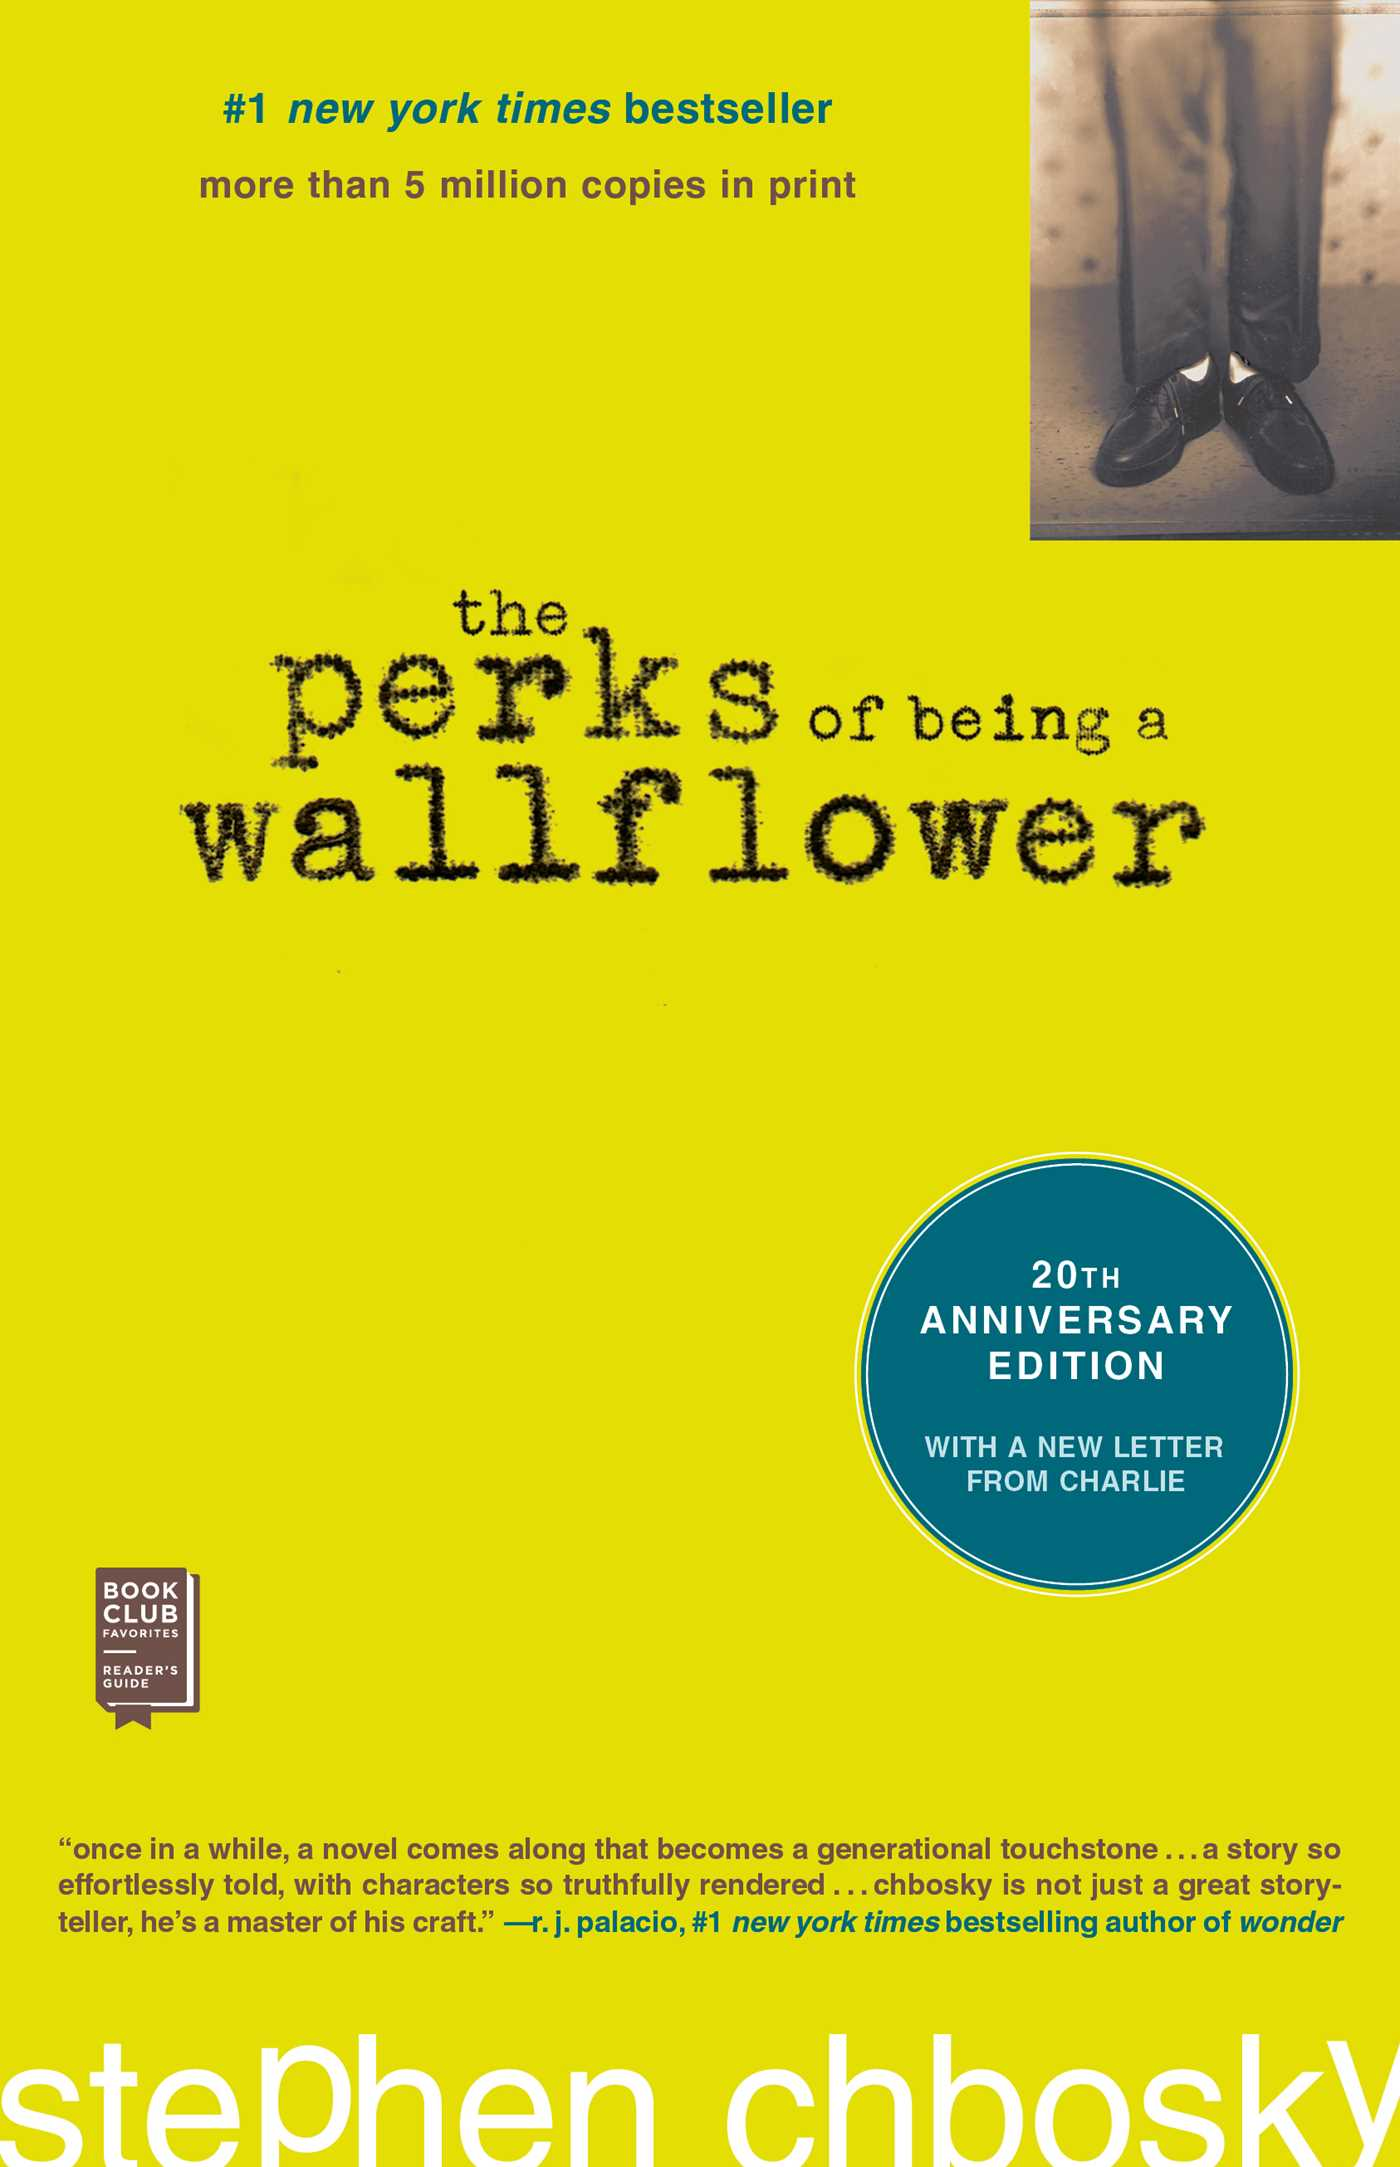 perks of being a wallflower Opens in new window